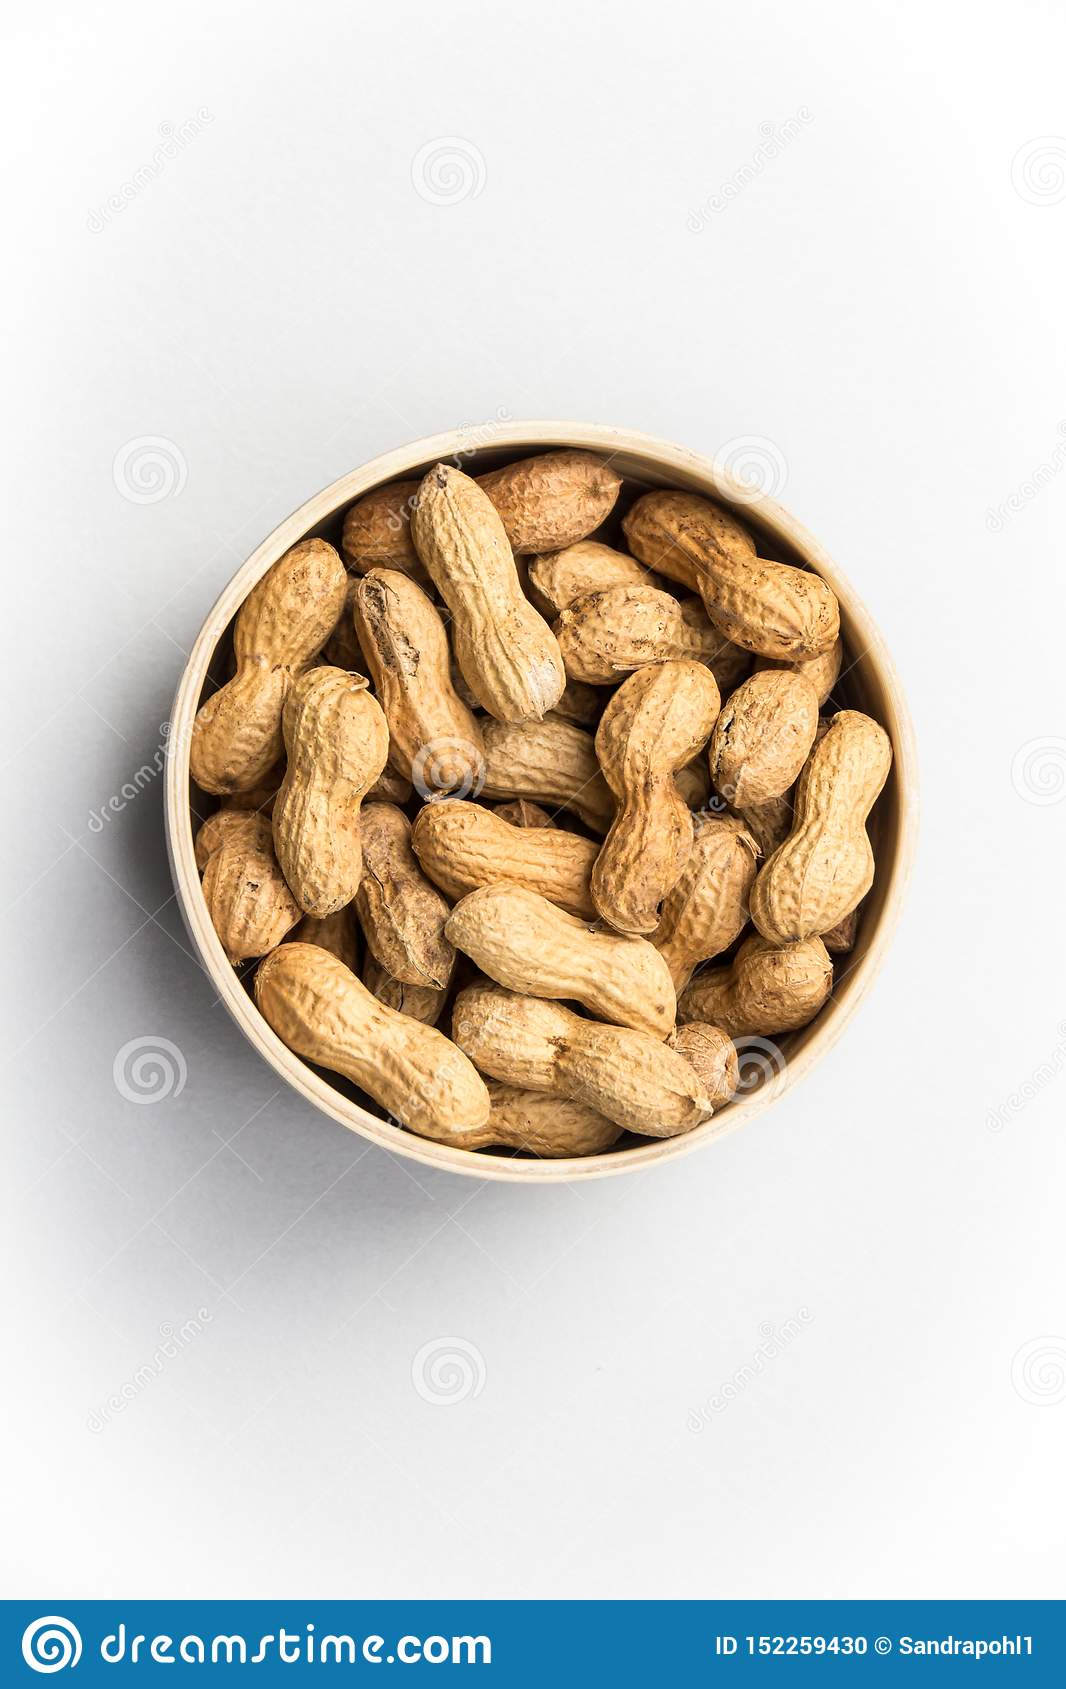 Isolated peanuts on white background